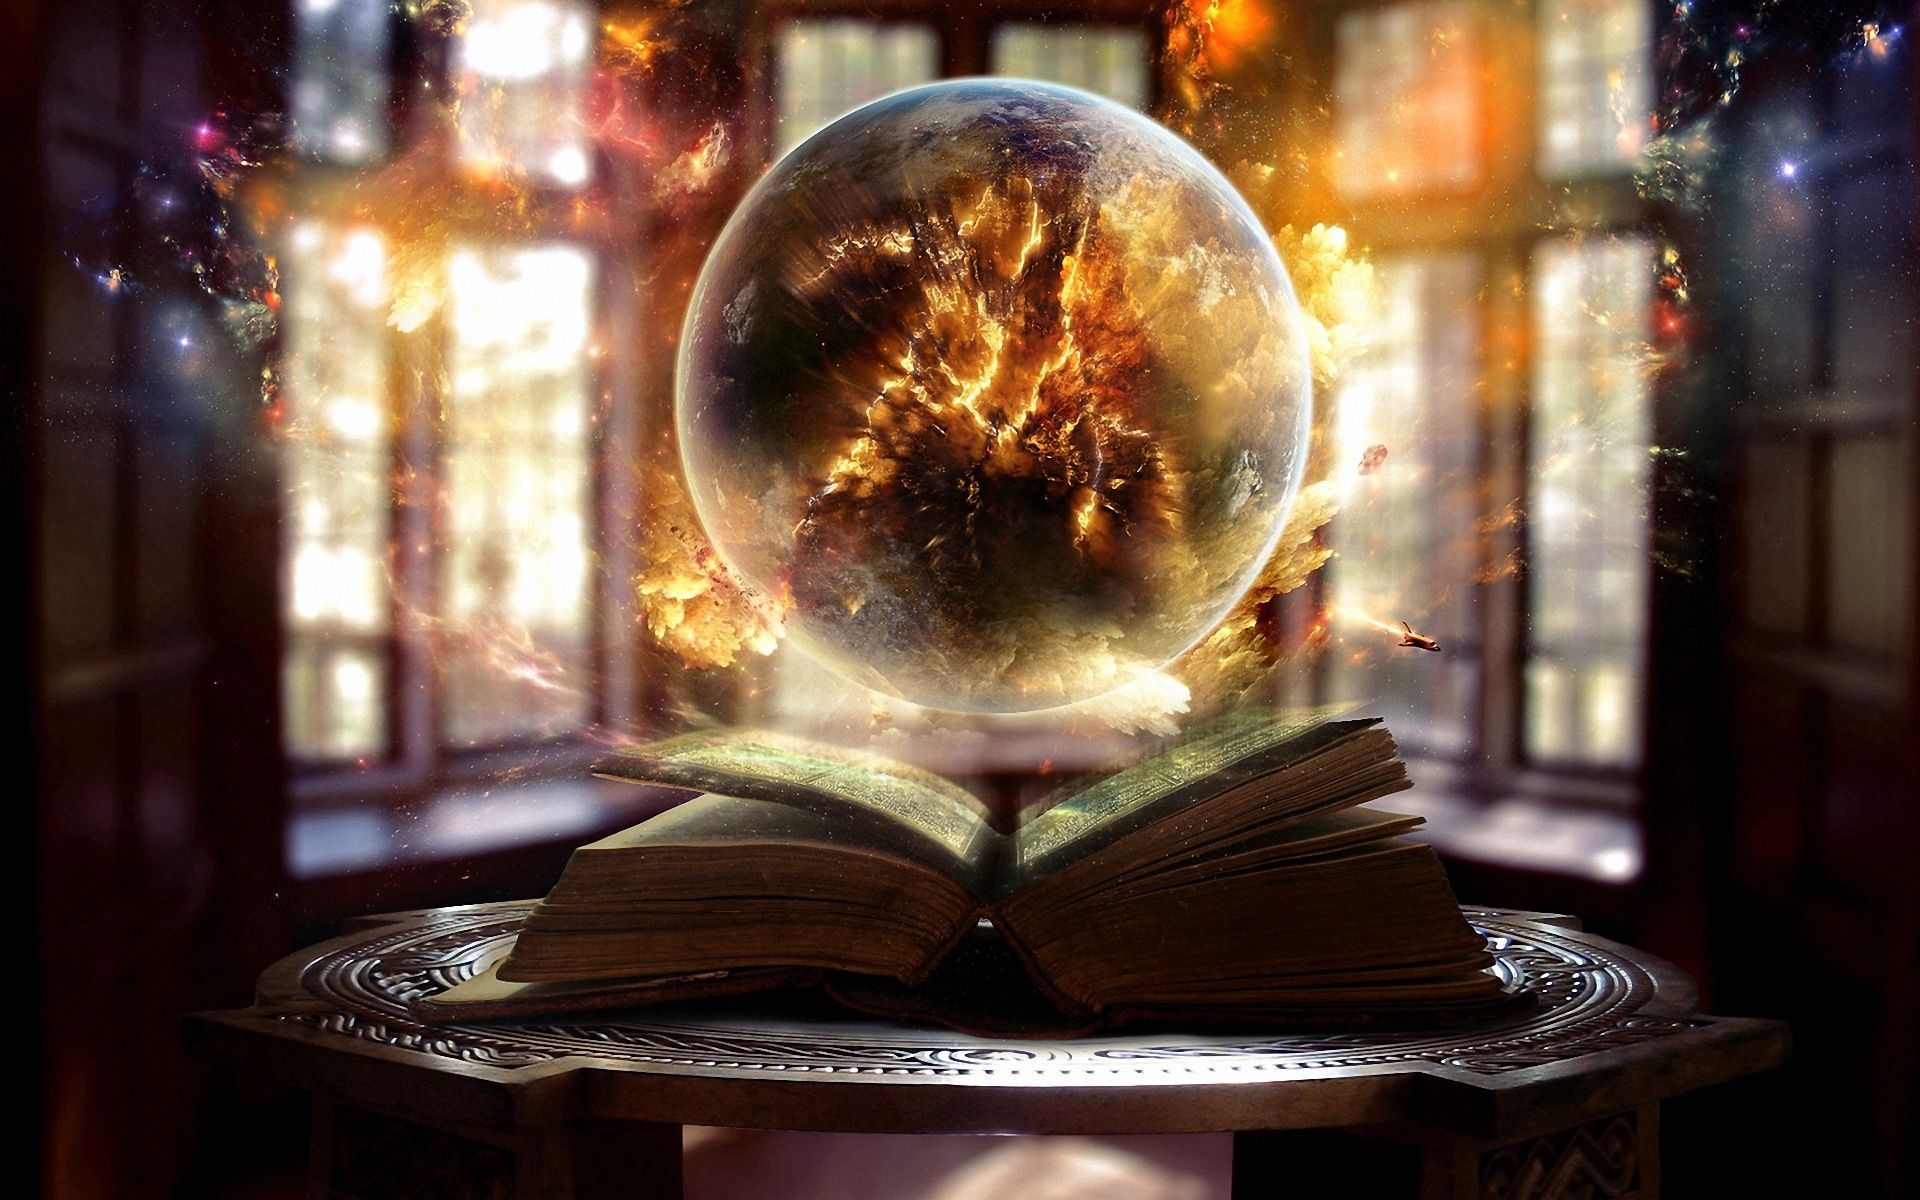 56272 download wallpaper Fantasy, Book, Ball, Magic, Witchcraft, Sorcery screensavers and pictures for free